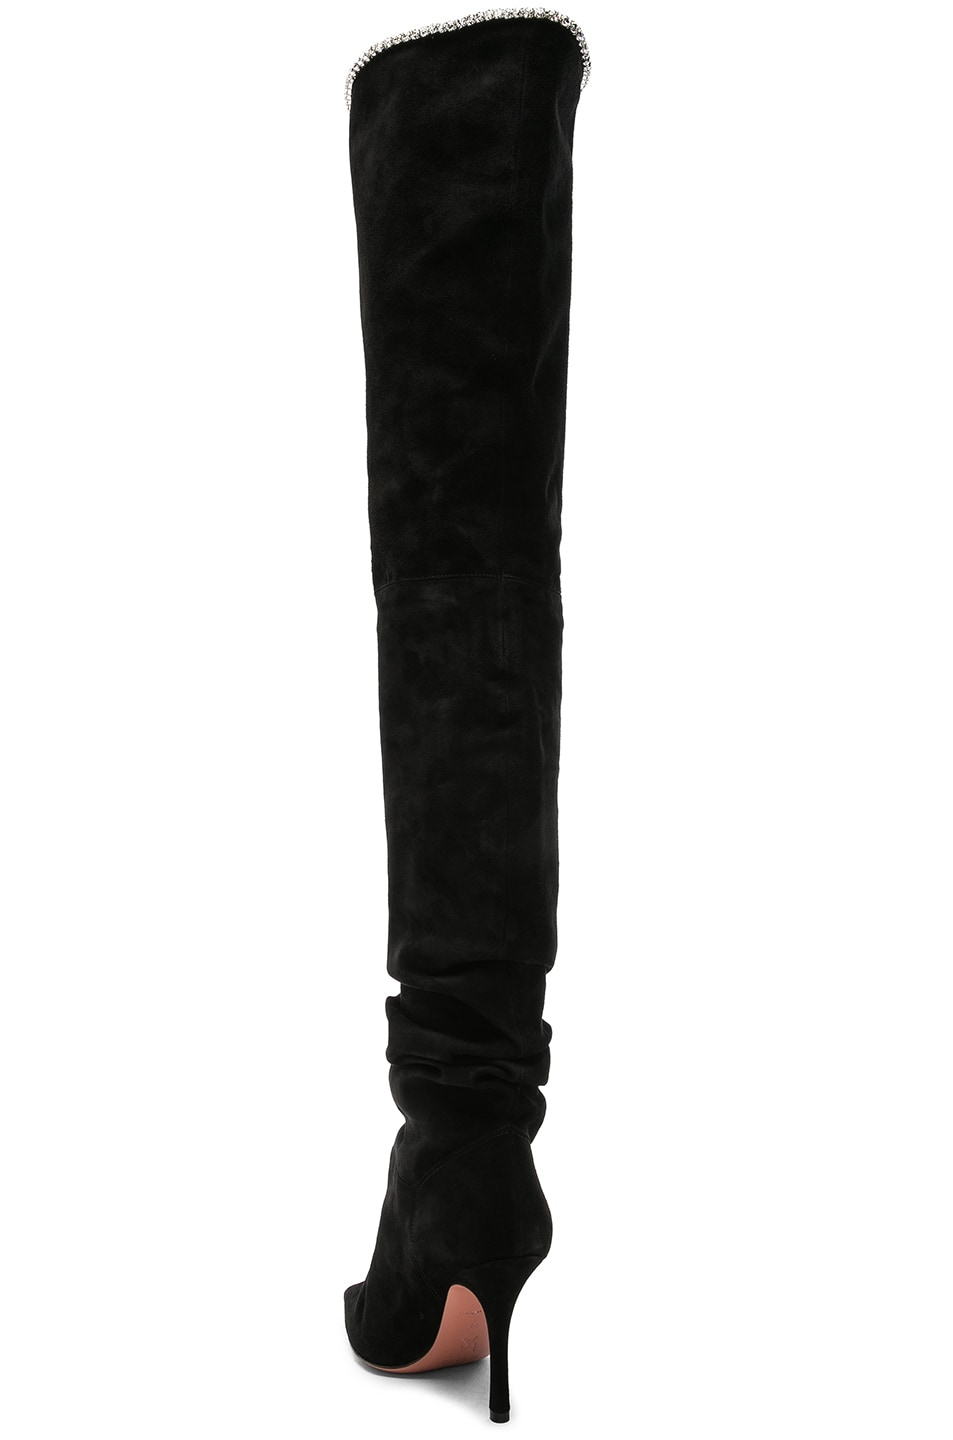 Image 3 of AMINA MUADDI Suede Barbara Thigh High Boots in Black & Crystals